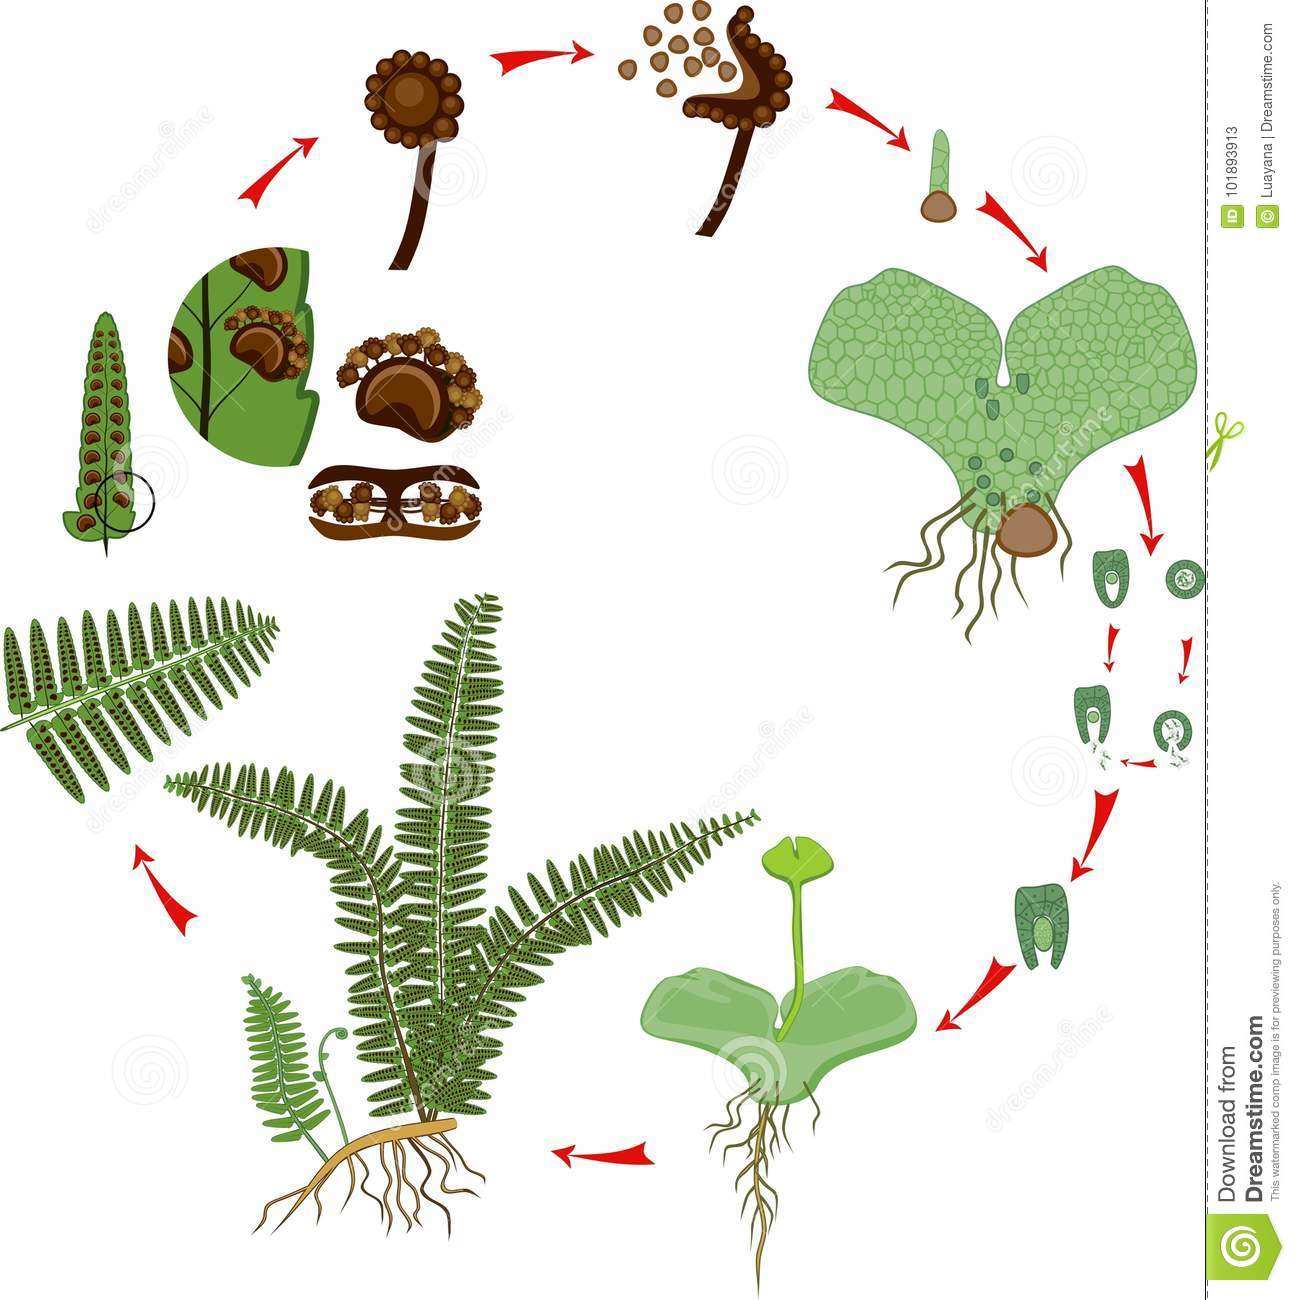 Life Cycle Of Fern. Plant Life Cycle With Alternation Of ...